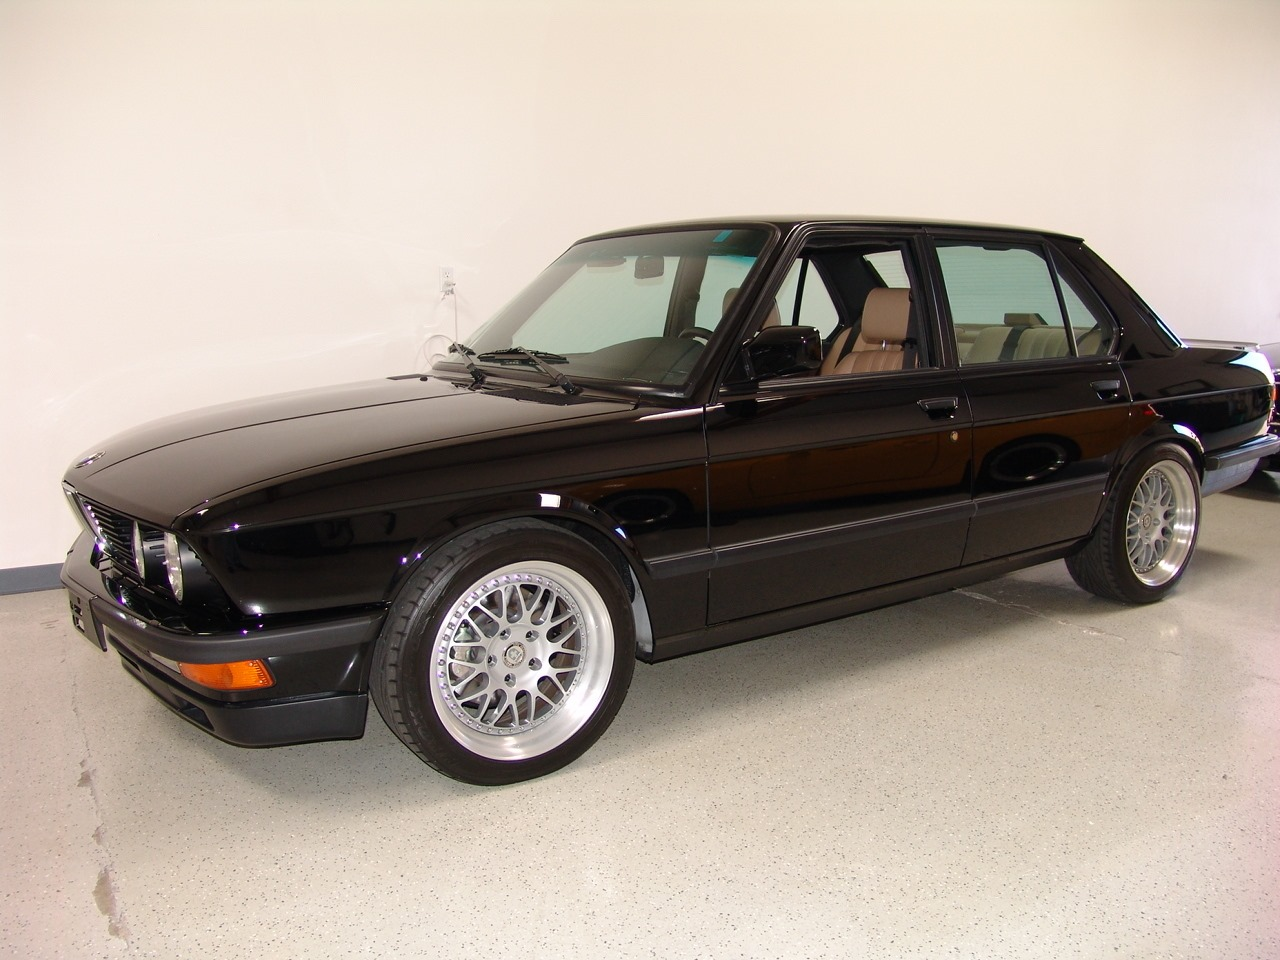 low mileage 1988 bmw m5 previously owned by frank gerber up for sale autoevolution. Black Bedroom Furniture Sets. Home Design Ideas